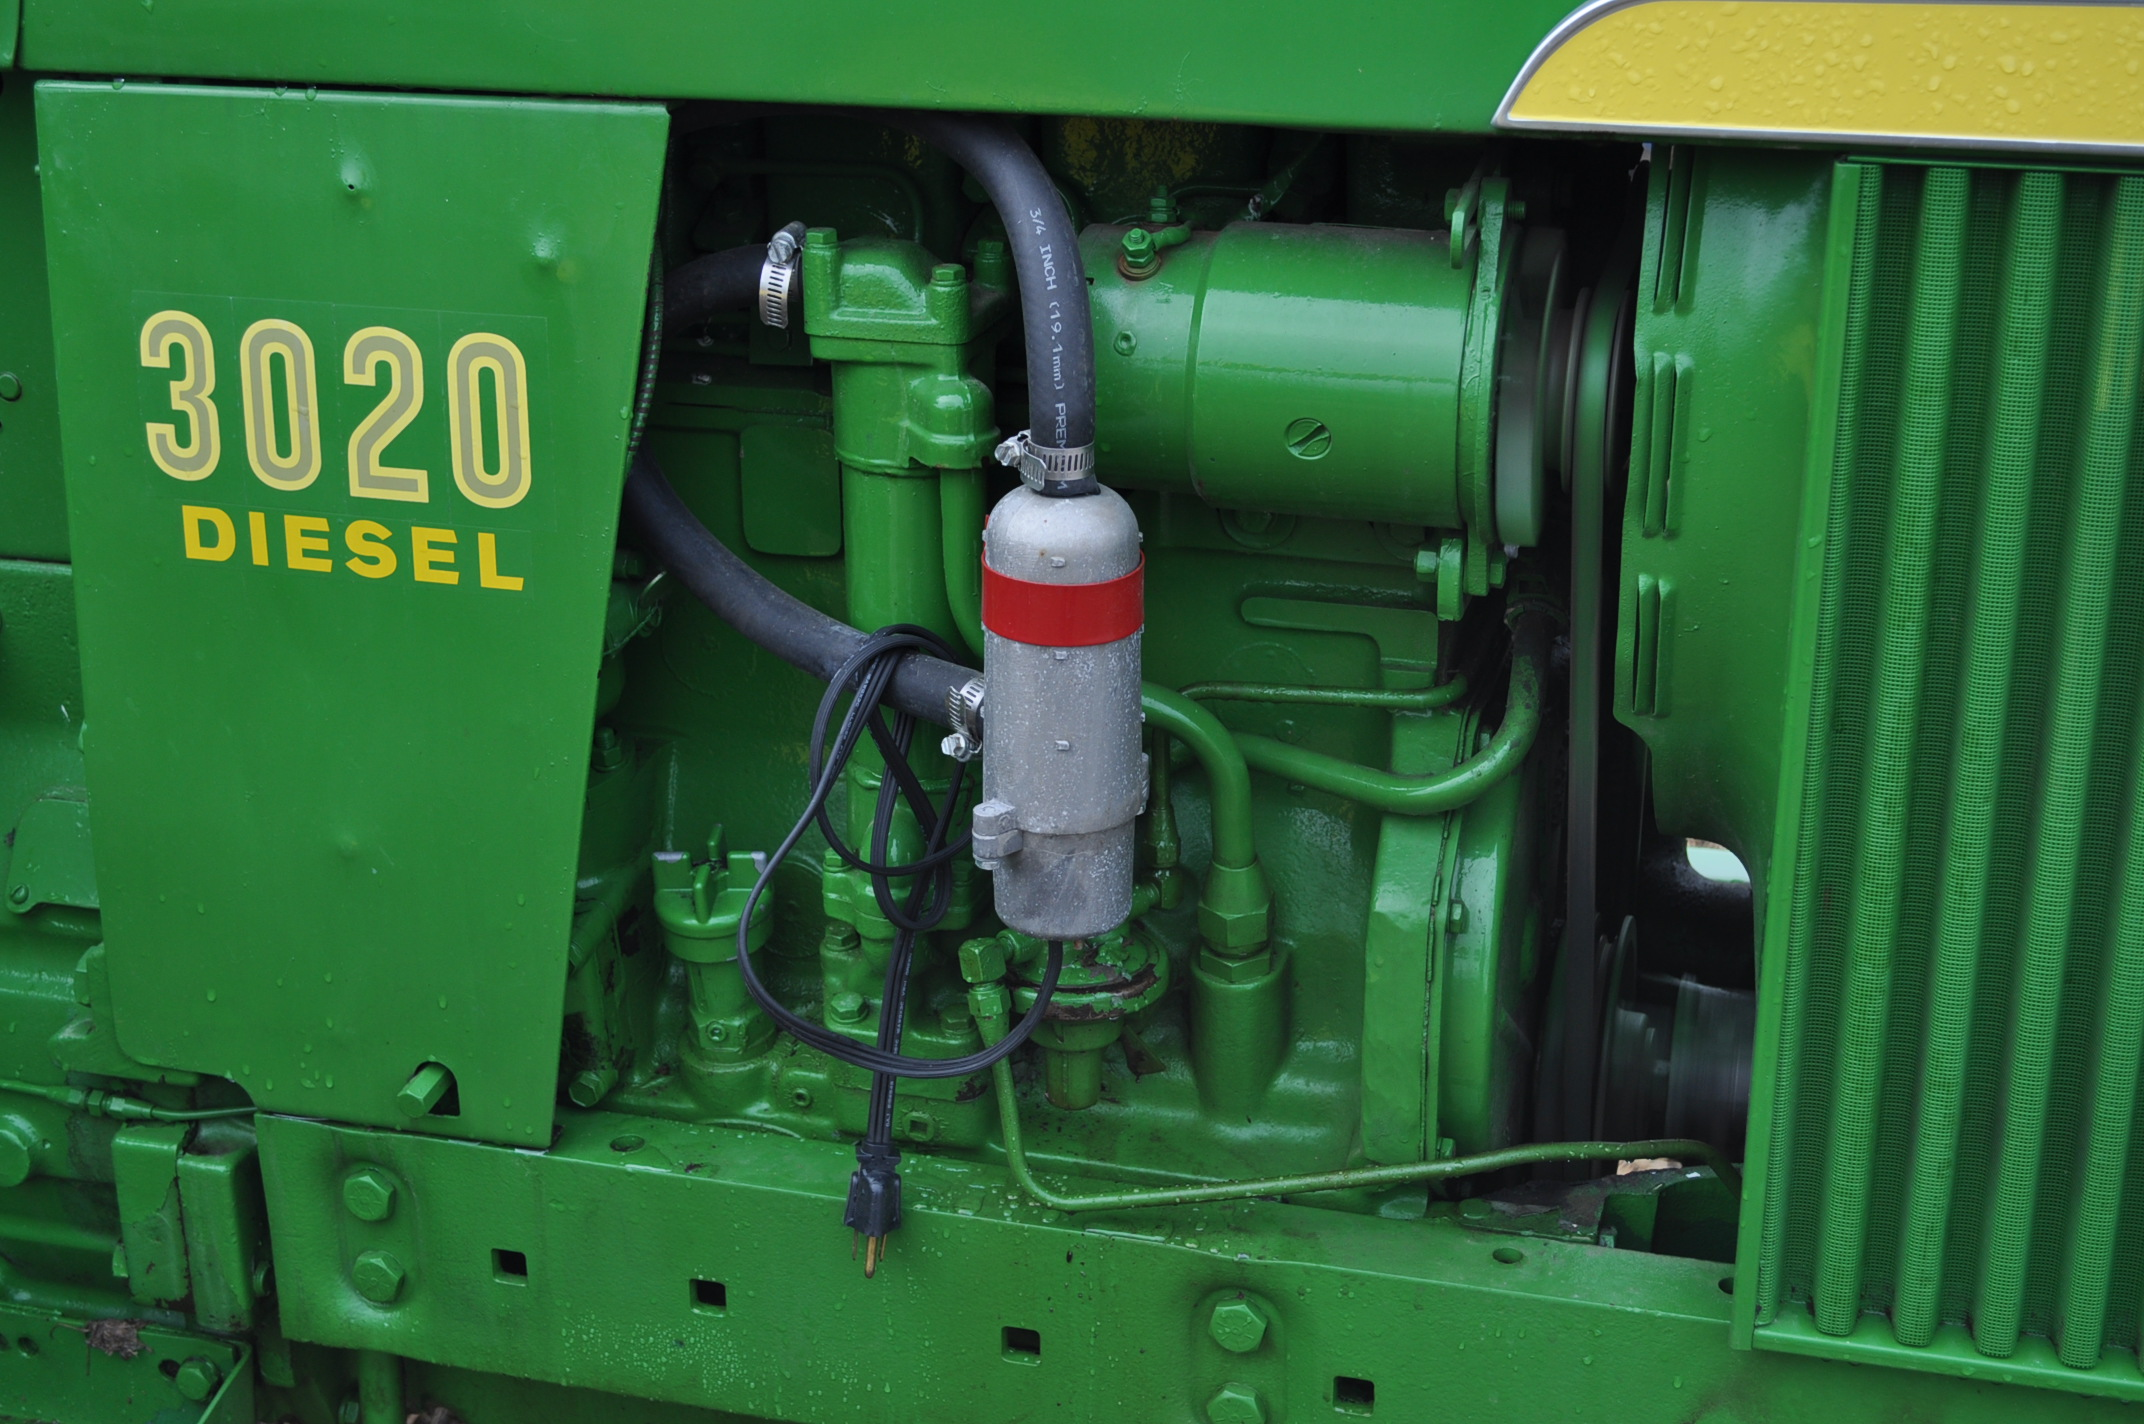 John Deere 3020 tractor, diesel, 18.4-34 rear, clamp on duals, 11L-15 narrow front, Syncro, 2 - Image 10 of 15